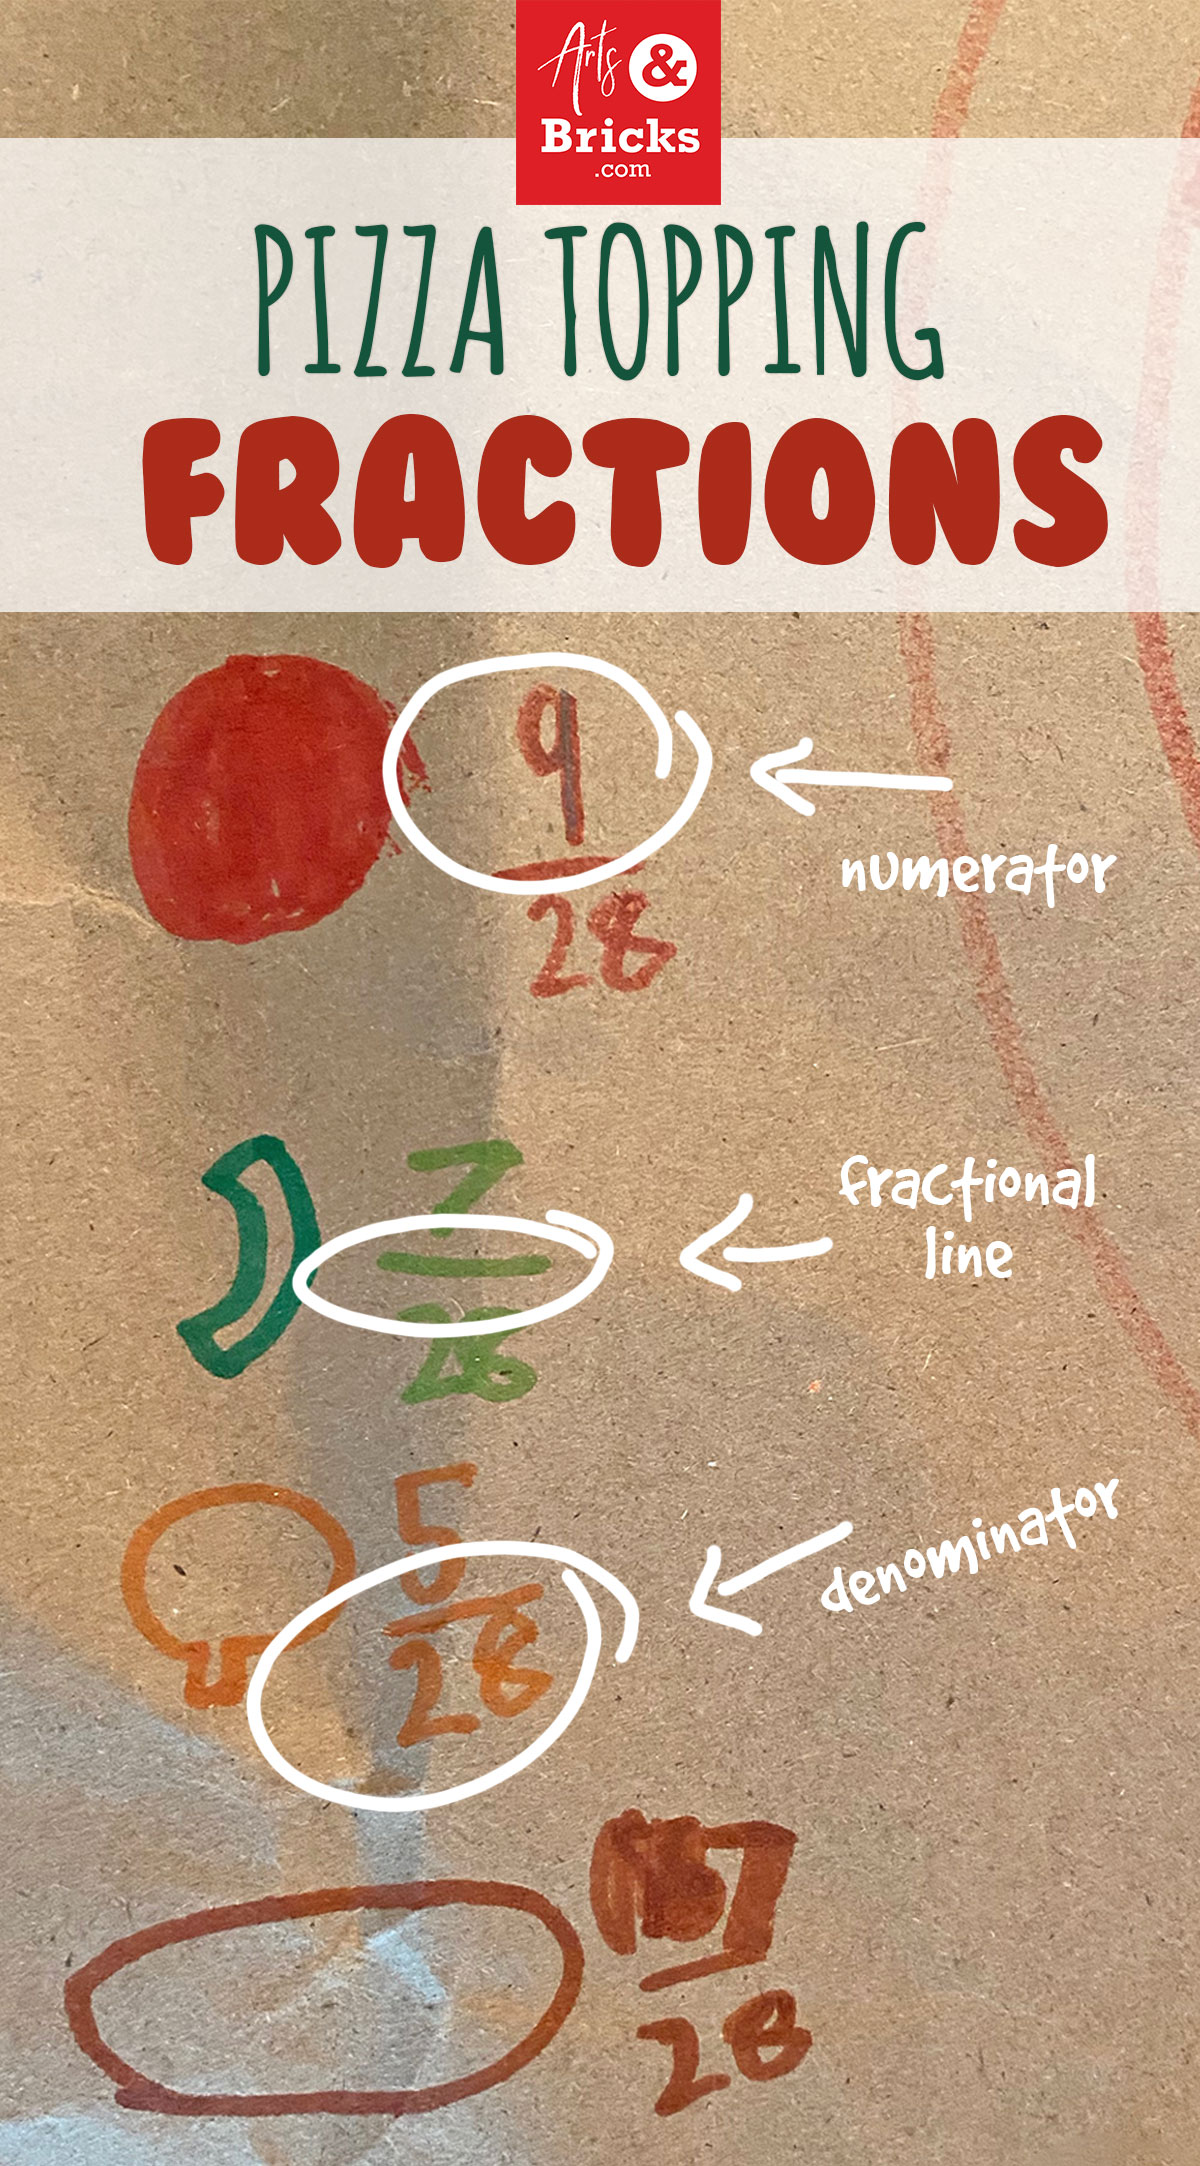 With virtually no prep, this simple pizza topping fractions math activity is a perfect short activity for students just learning about fractions. It gives students a visual way to count and understand the concept of numerators and denominators. #playful #steam #stem #drawit #homeschool #teachfractions #fractions #pizza #math